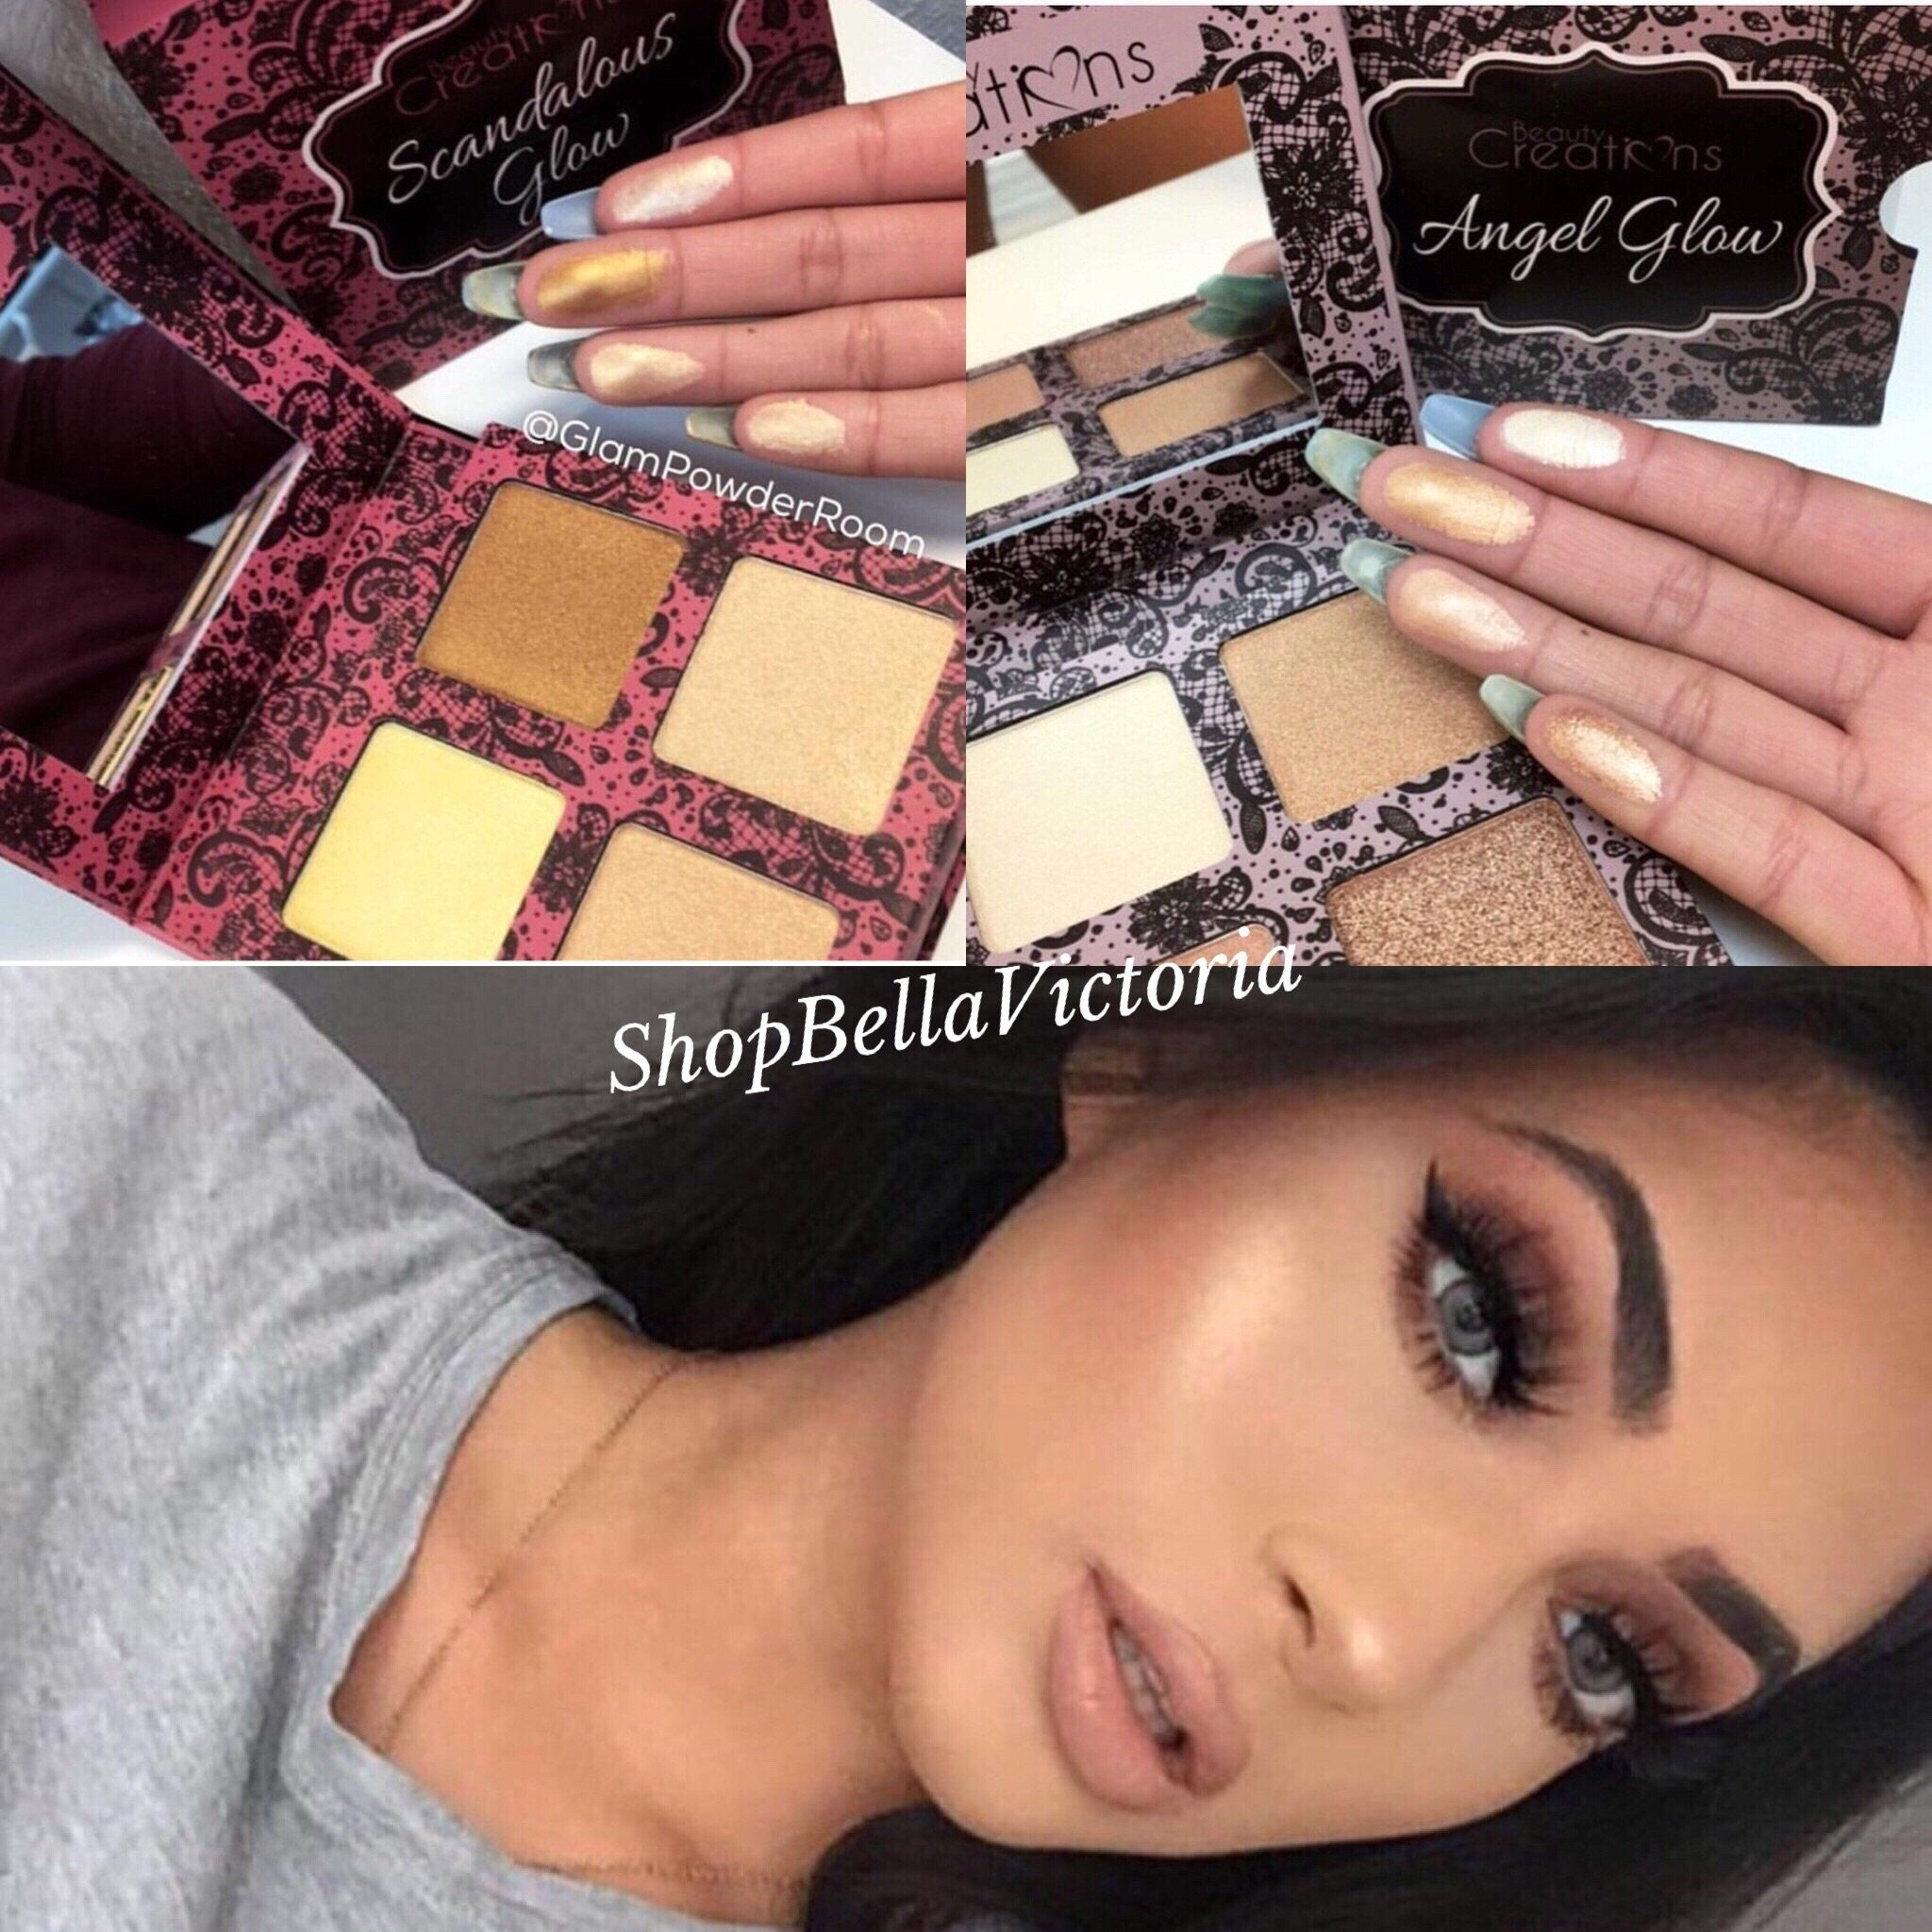 Scandalous Glow Highlight Palette Beauty Creations And Cosmetics Angel